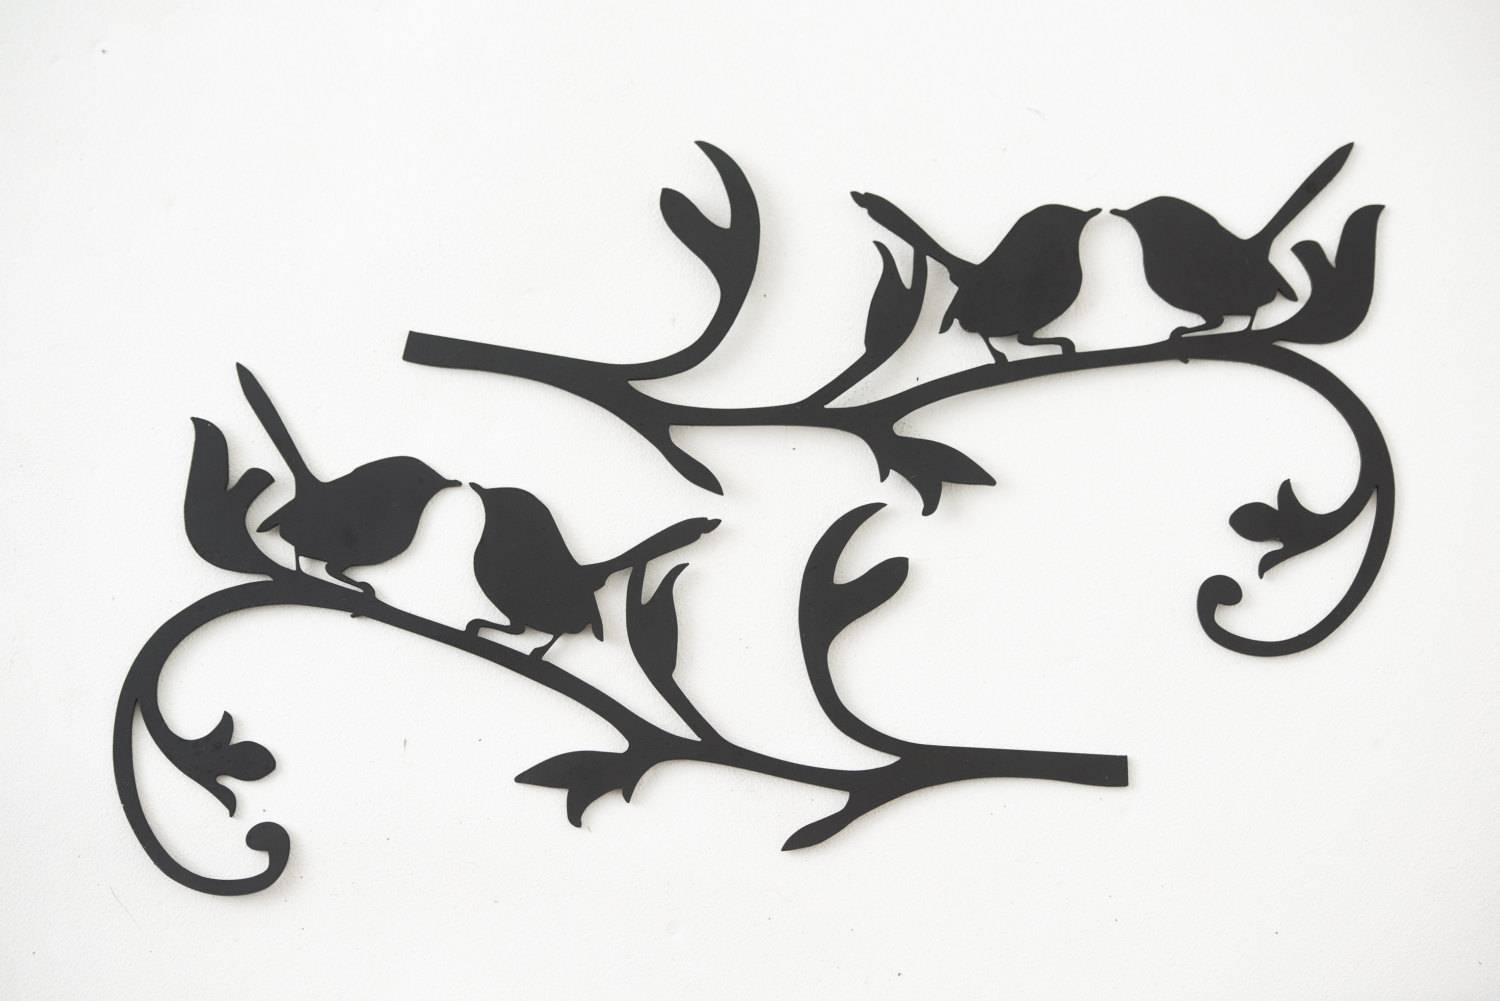 Wall Art Designs: Metal Bird Wall Art Hand Drawn And Laser Cut Intended For Newest Branch Metal Wall Art (View 19 of 20)